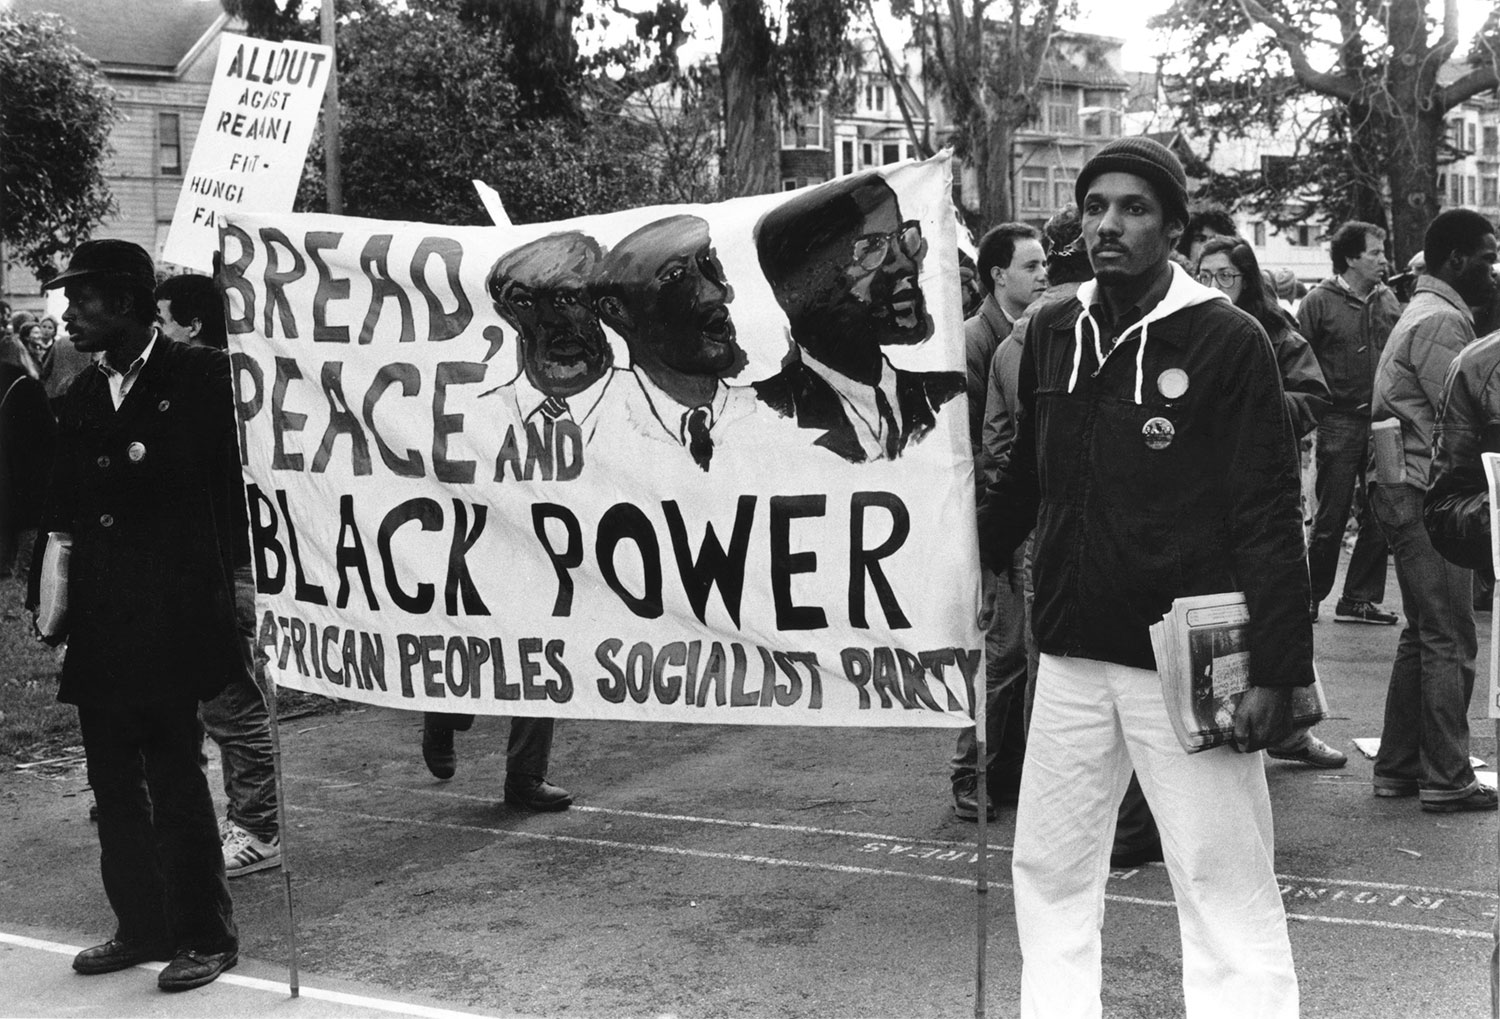 African People's Socialist Party Demonstrate